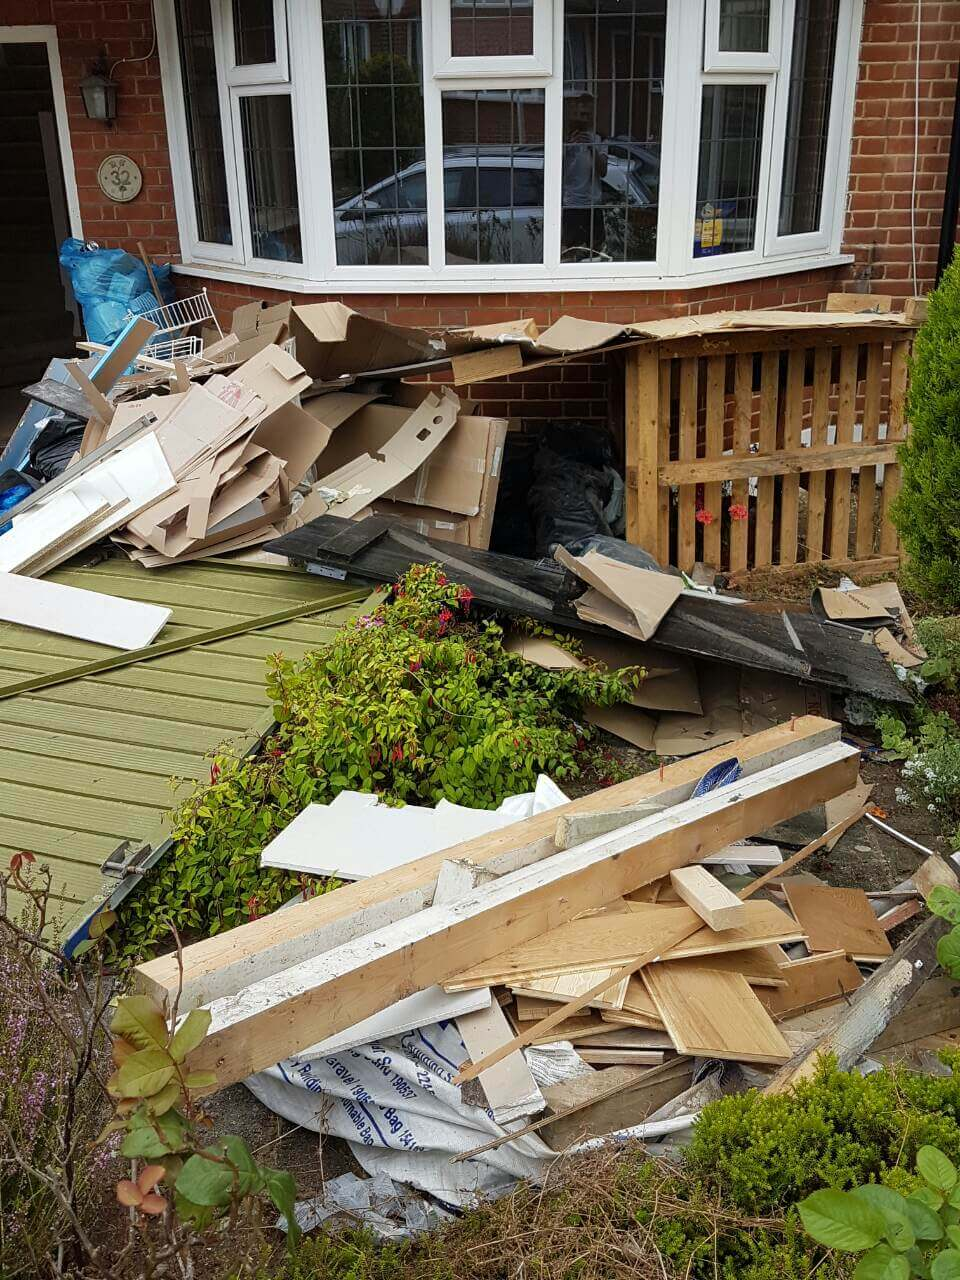 house refuse collection TW16